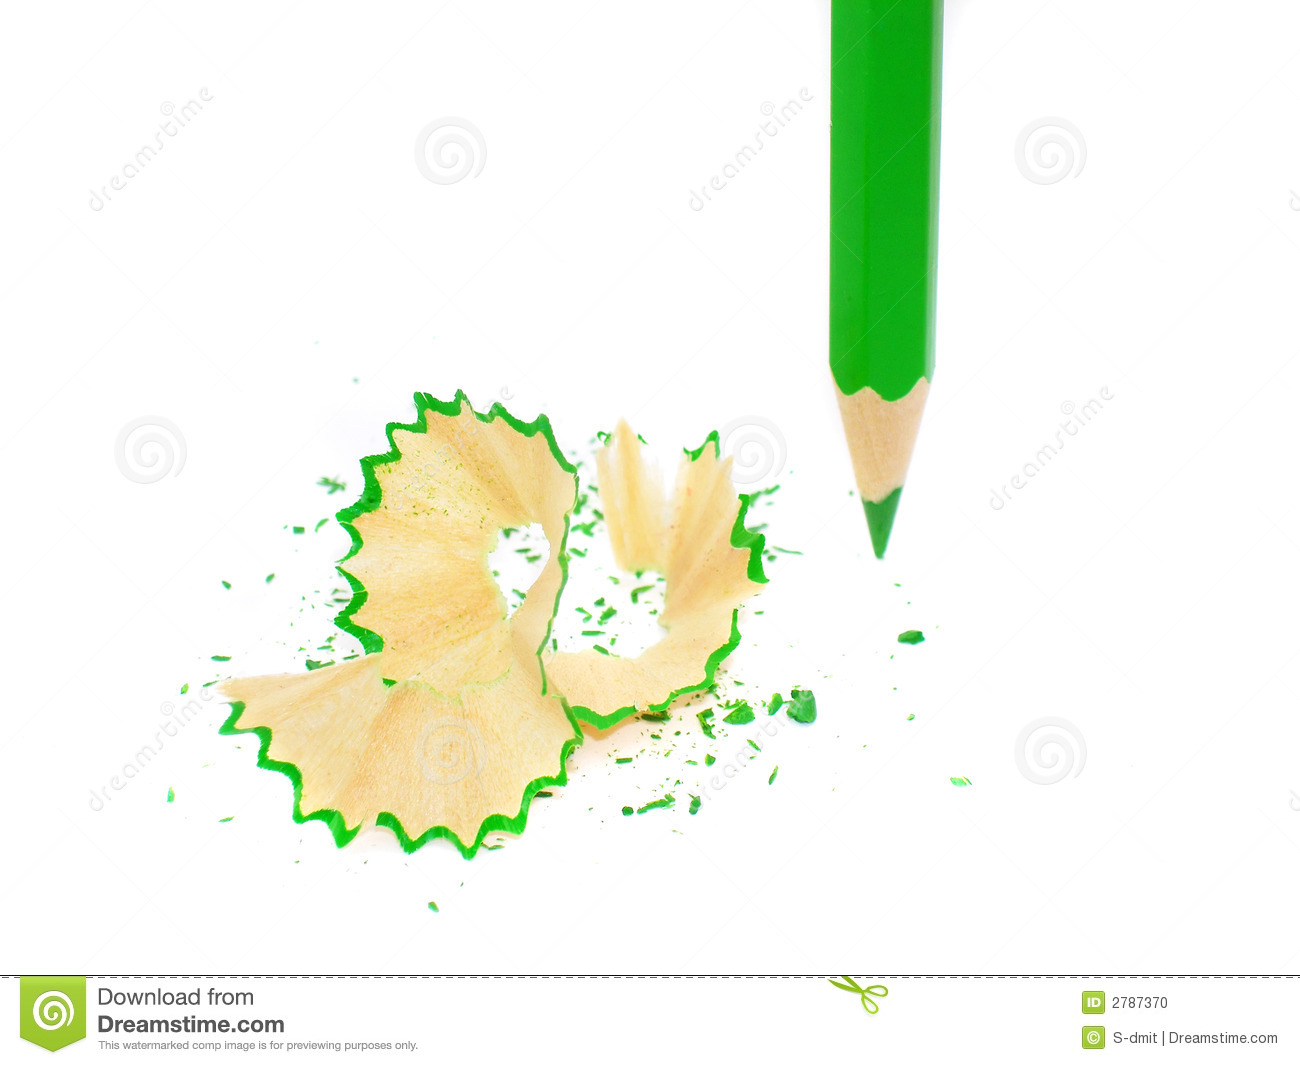 Sharpened pencil on white